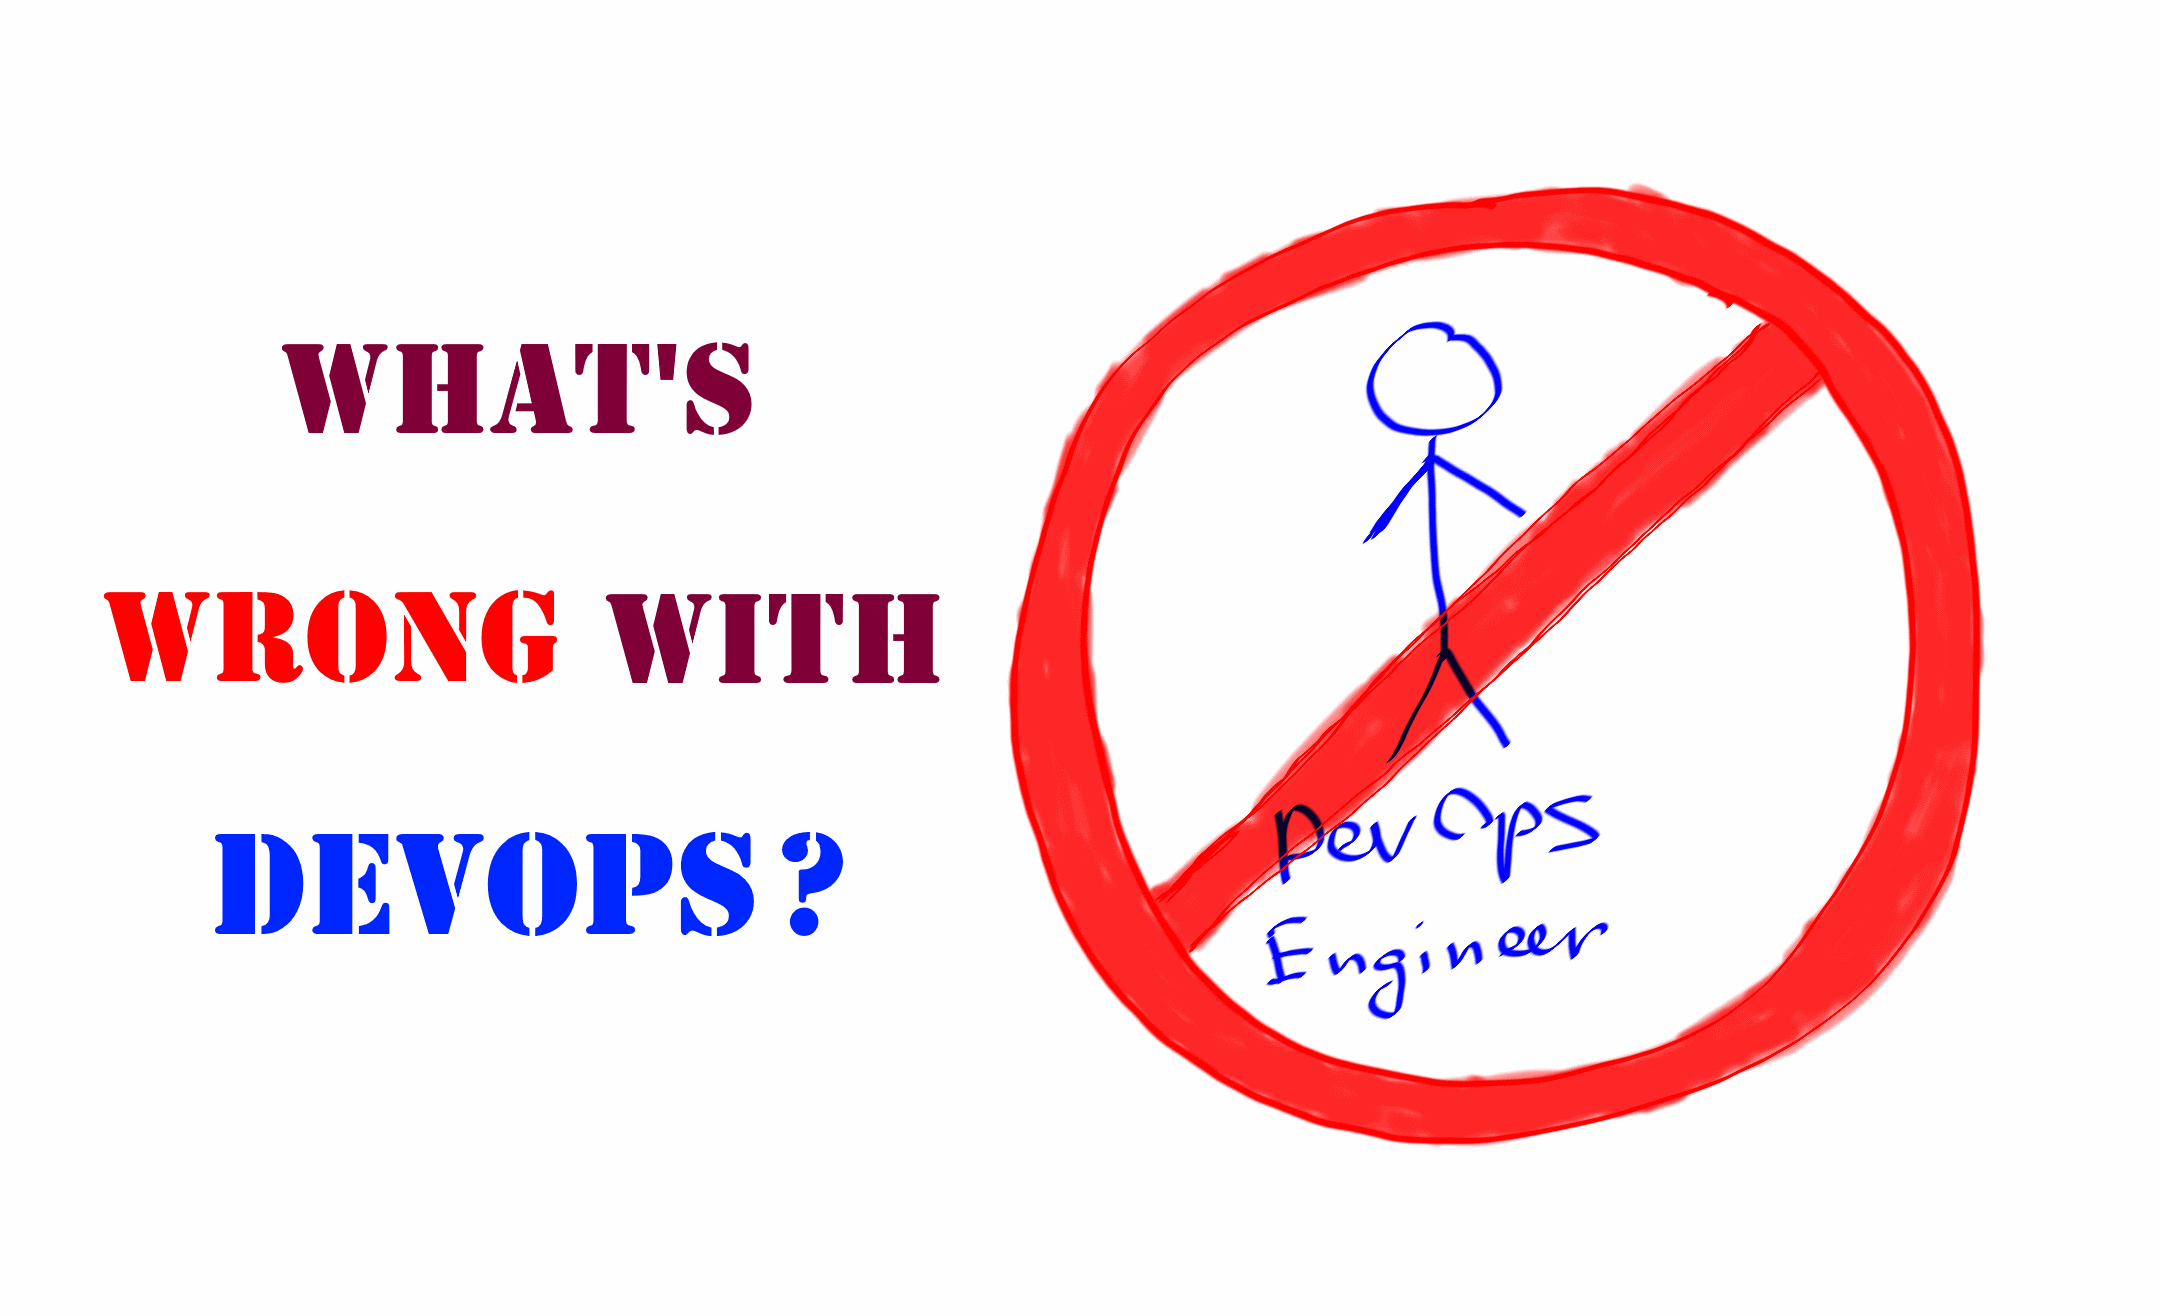 What's wrong with DevOps?